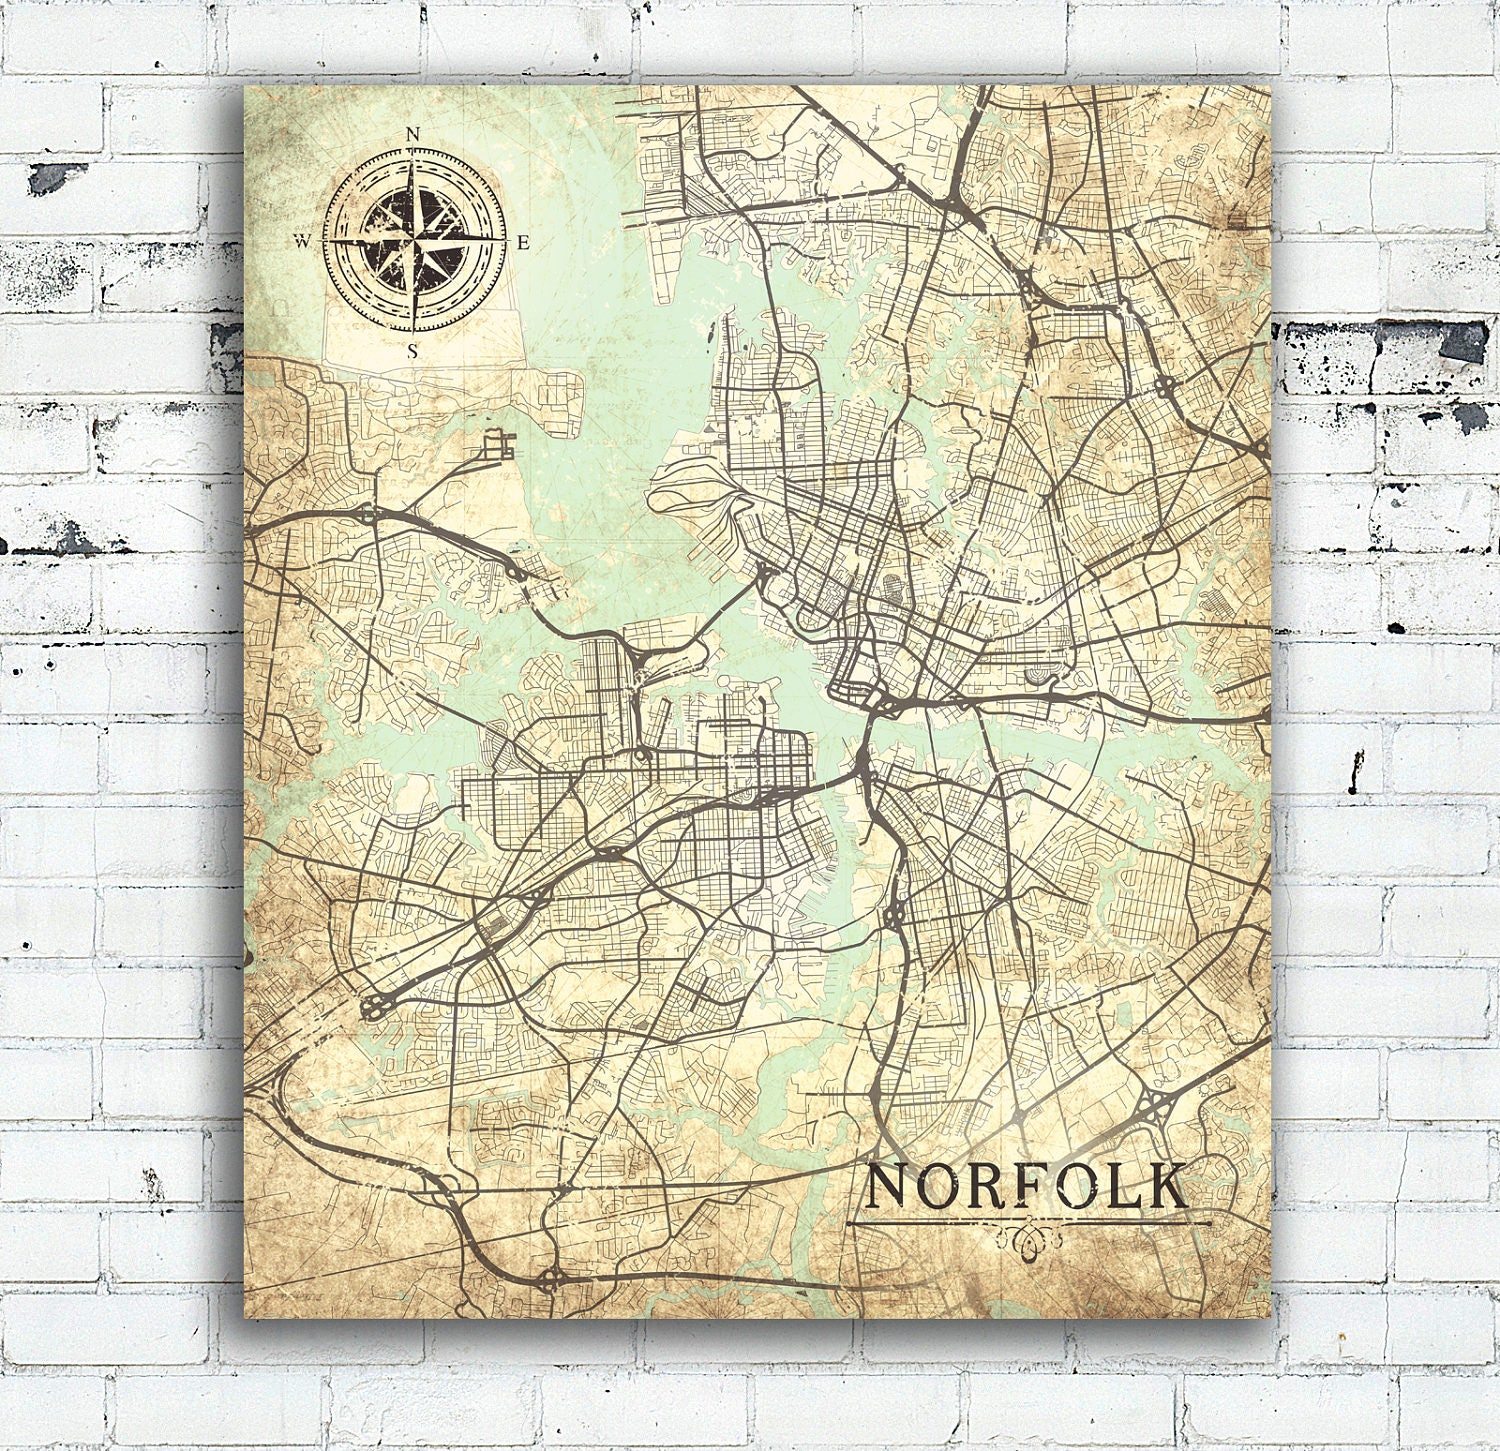 NORFOLK VA Canvas Print VA Norfolk Va Town Plan Virginia Vintage map ...